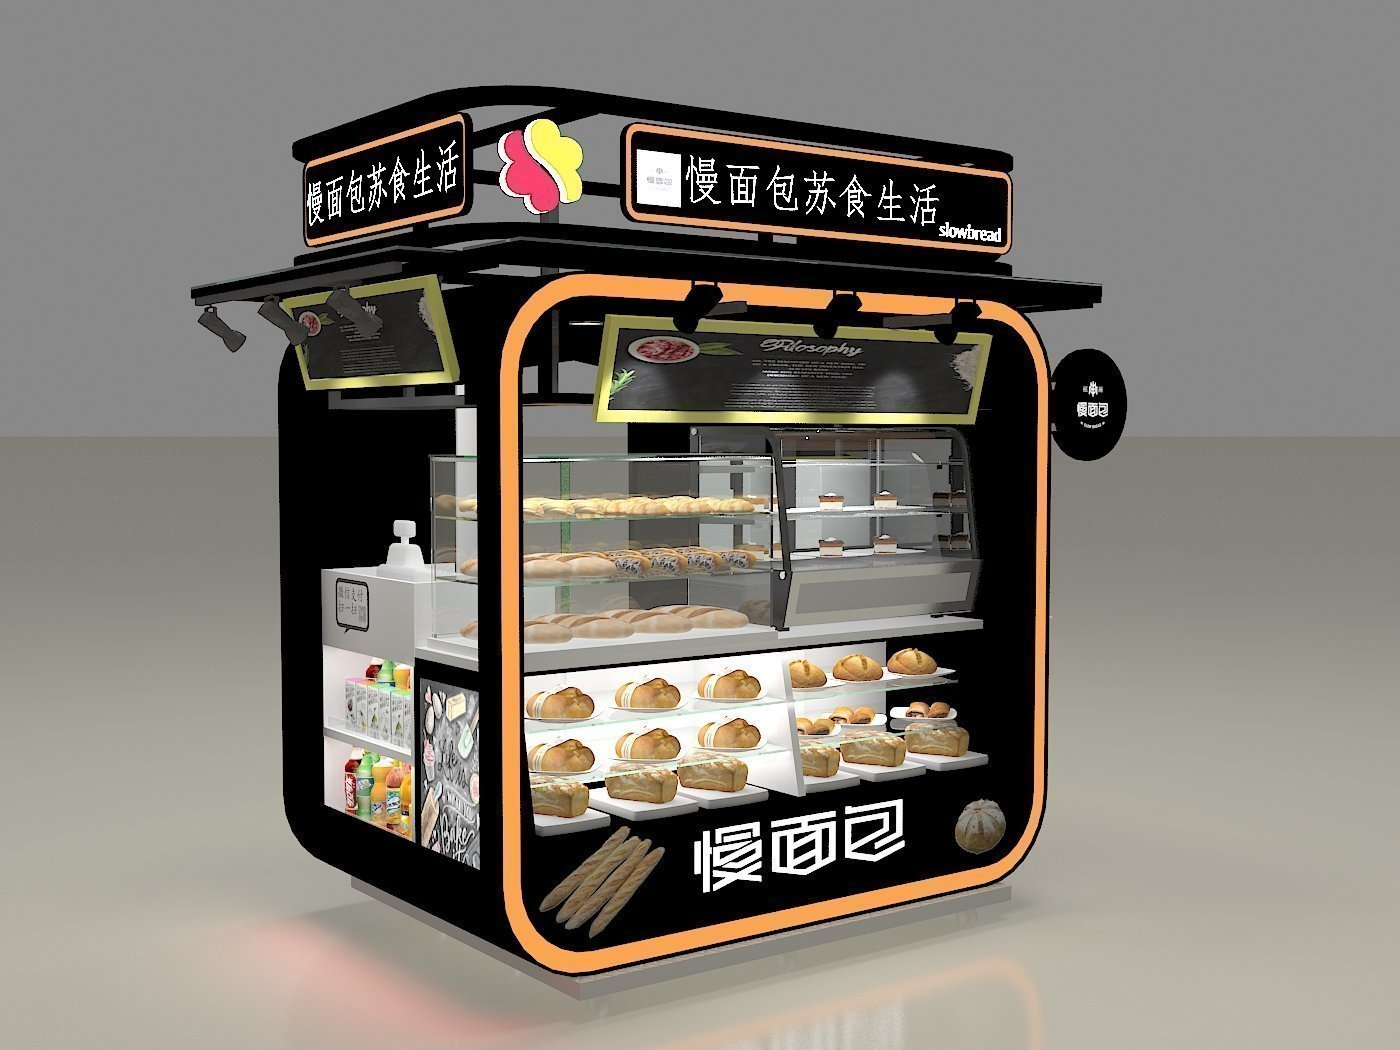 bakery display kiosk